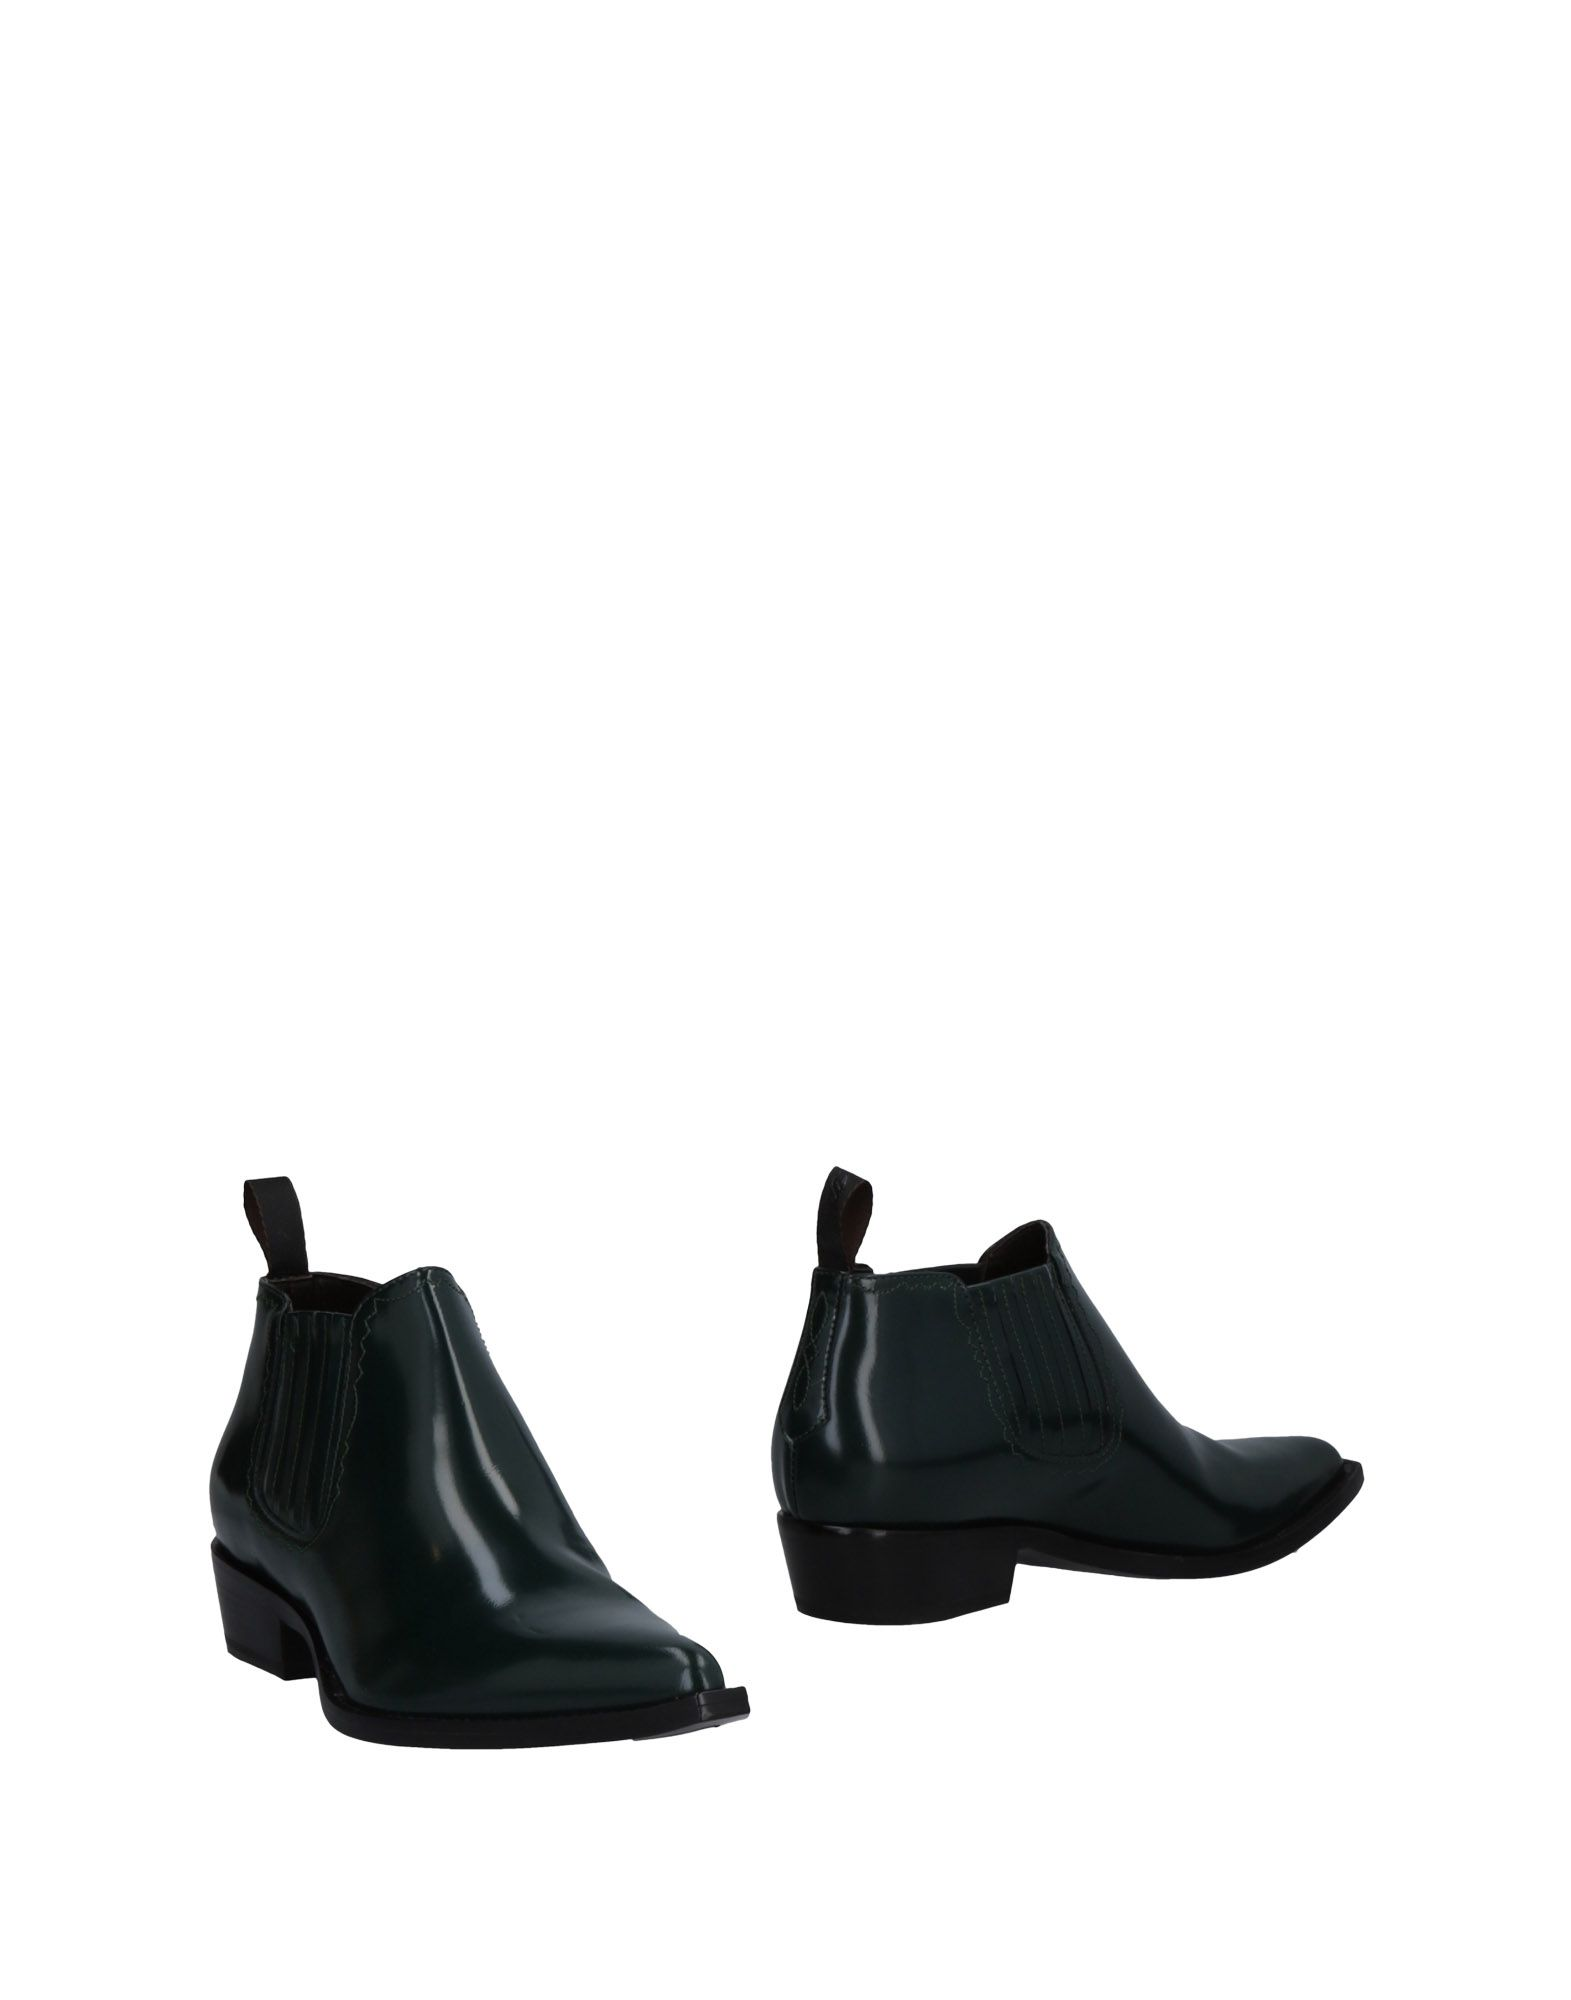 SONORA Ankle Boots in Green